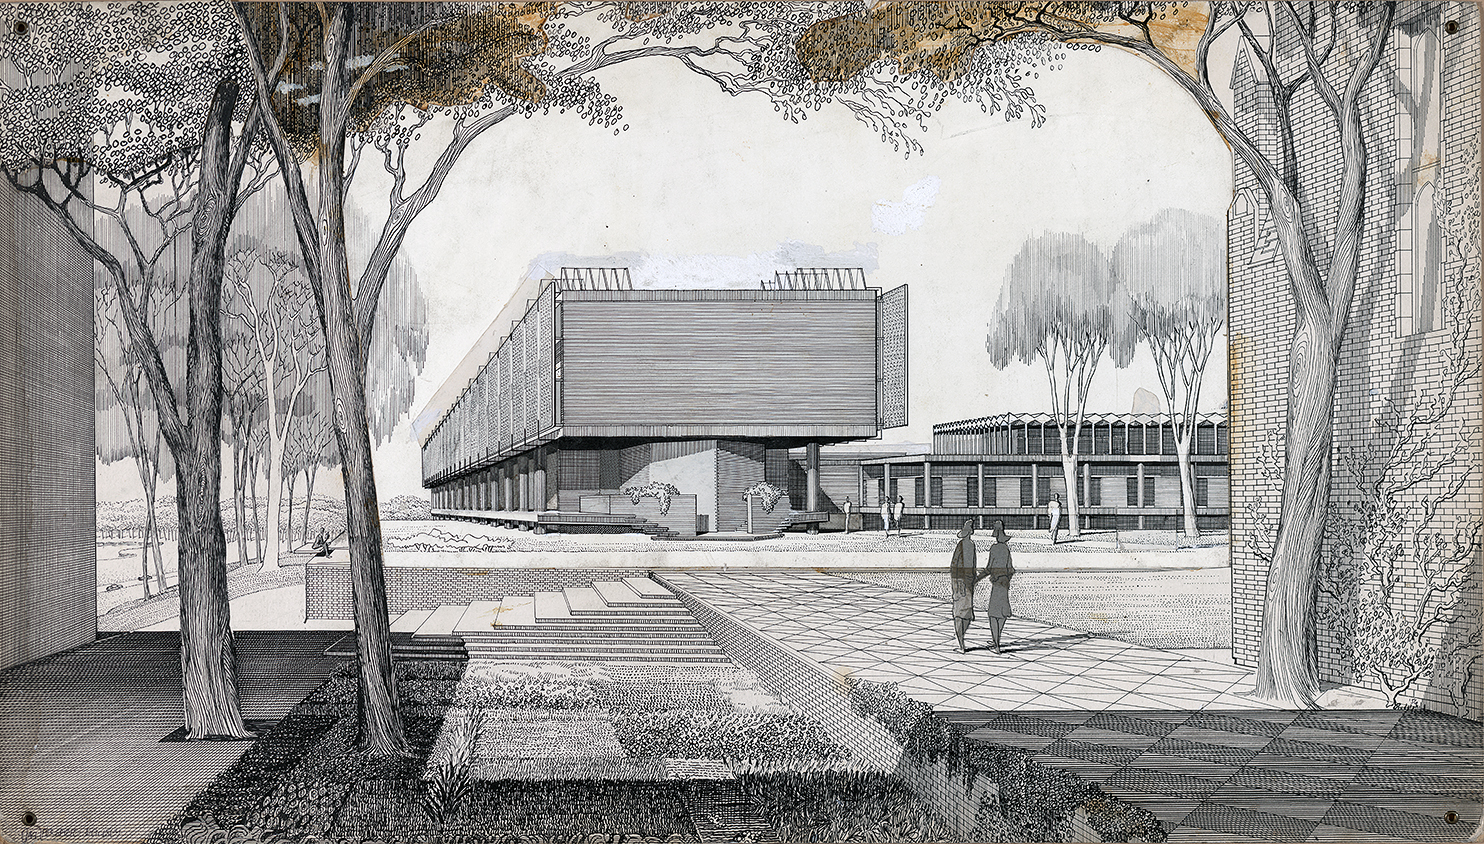 Mary Cooper Jewett Arts Center, Wellesley College, Wellesley, Massachusetts. Exterior Perspective Rendering.